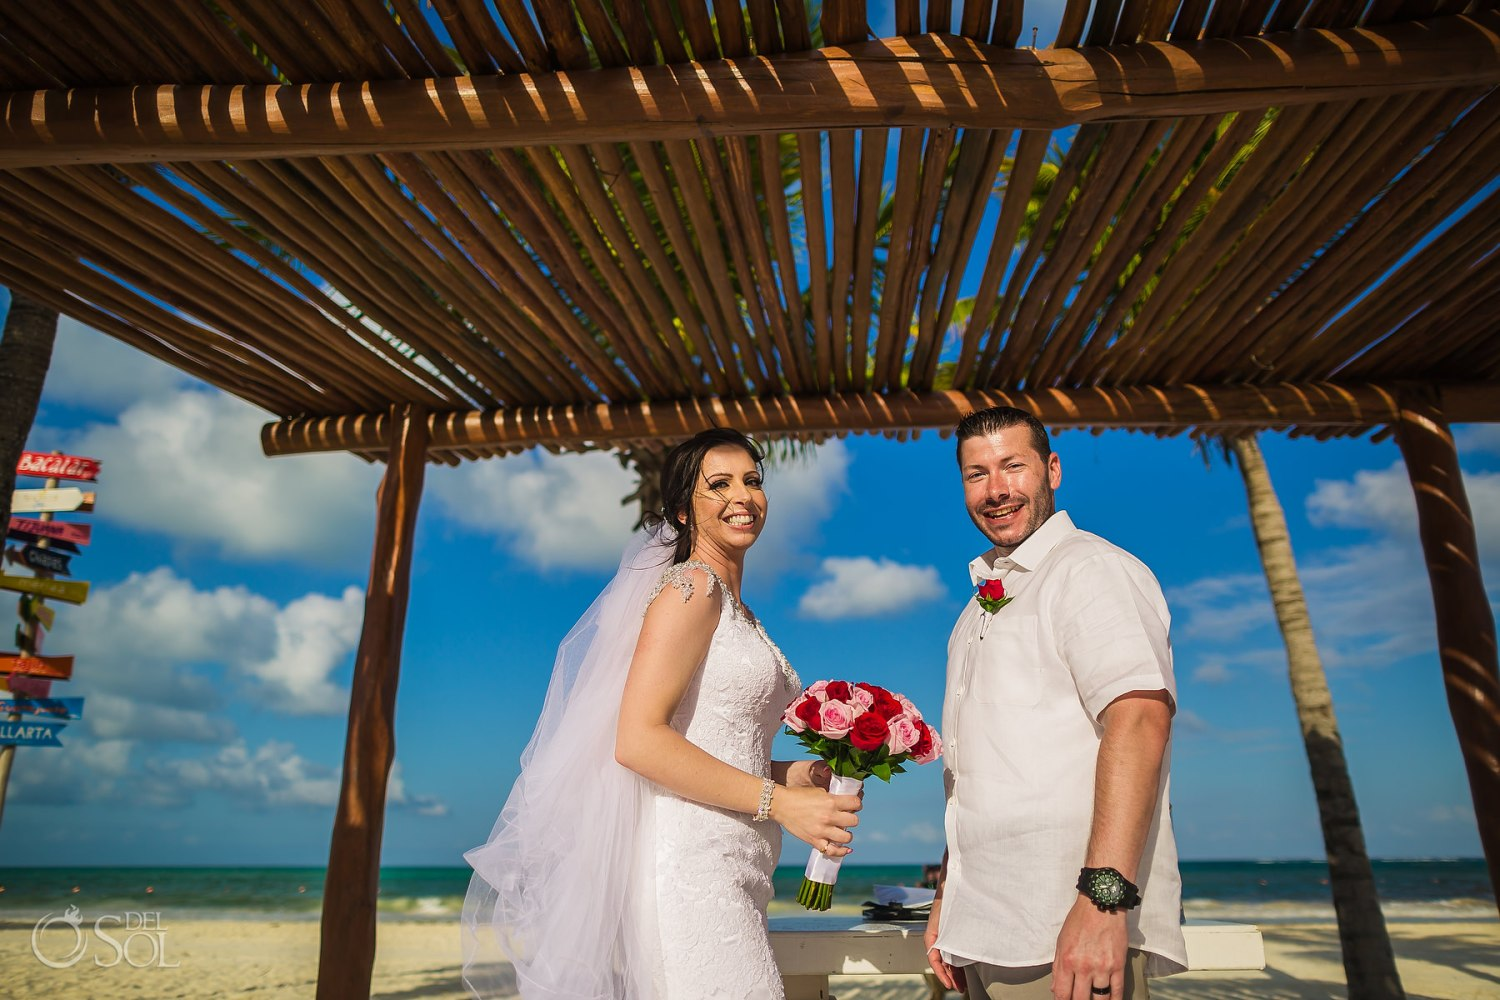 Elope in Mexico the most romantic way to celebrate your love